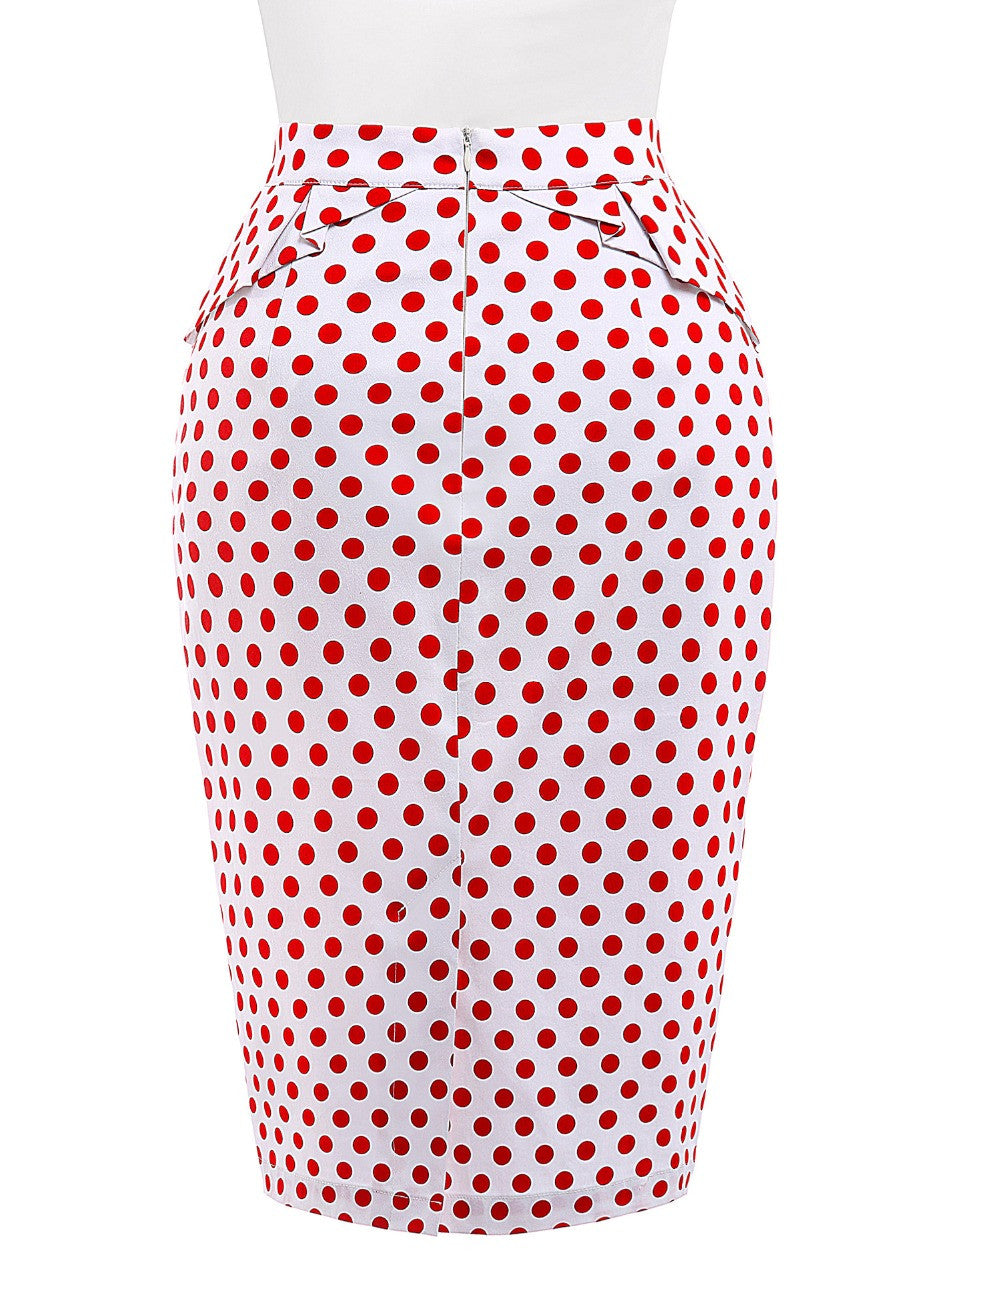 2016 Fashion 50s Summer style Womens Pencil Skirt Polka Dots woman Pleated Cotton sexy Bodycon Vintage Skirts Plus Size - Gifts Leads